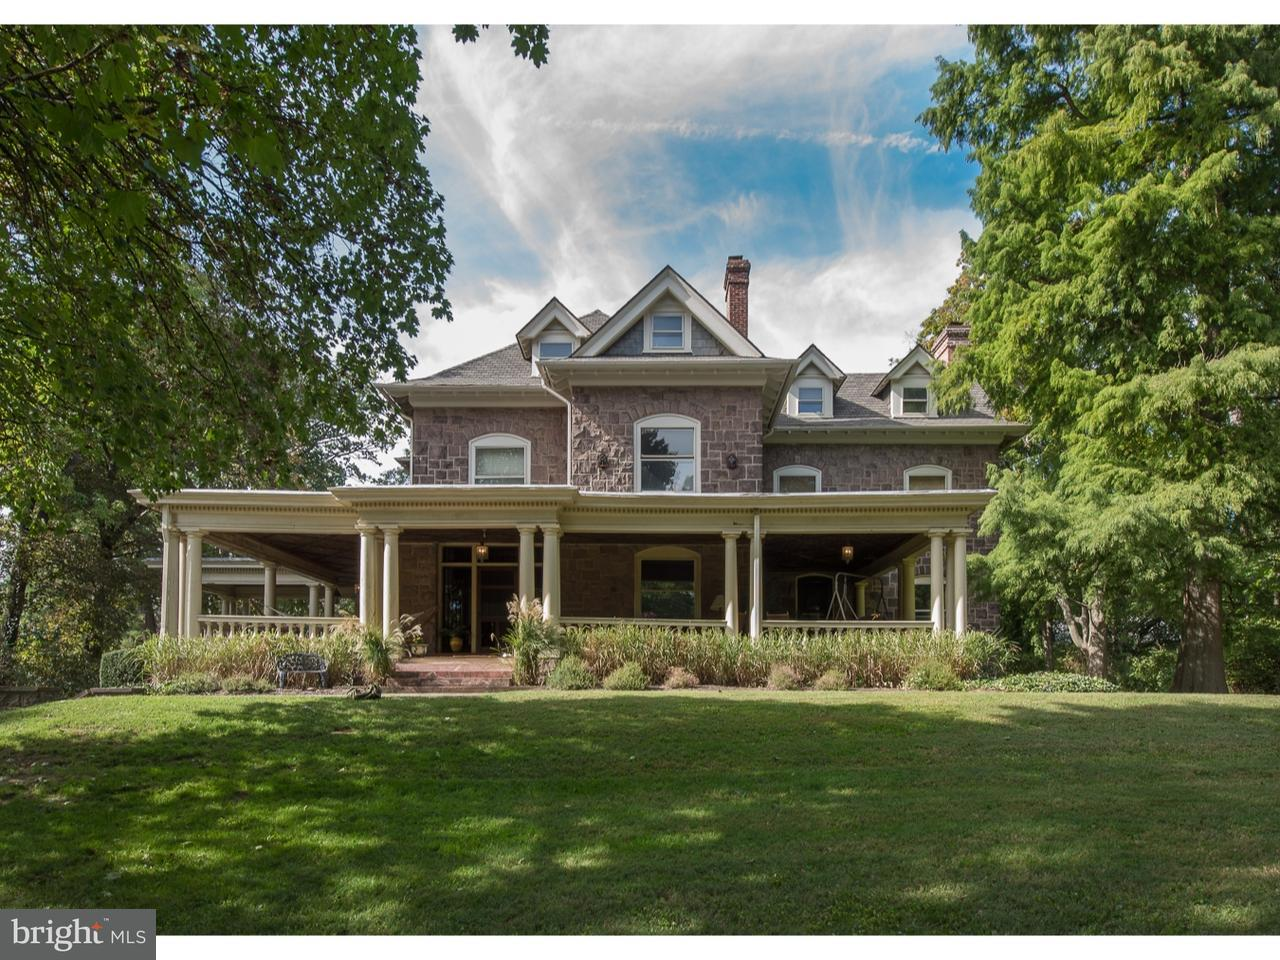 Single Family Home for Sale at 437 N HIGHLAND Avenue Merion Station, Pennsylvania 19066 United States